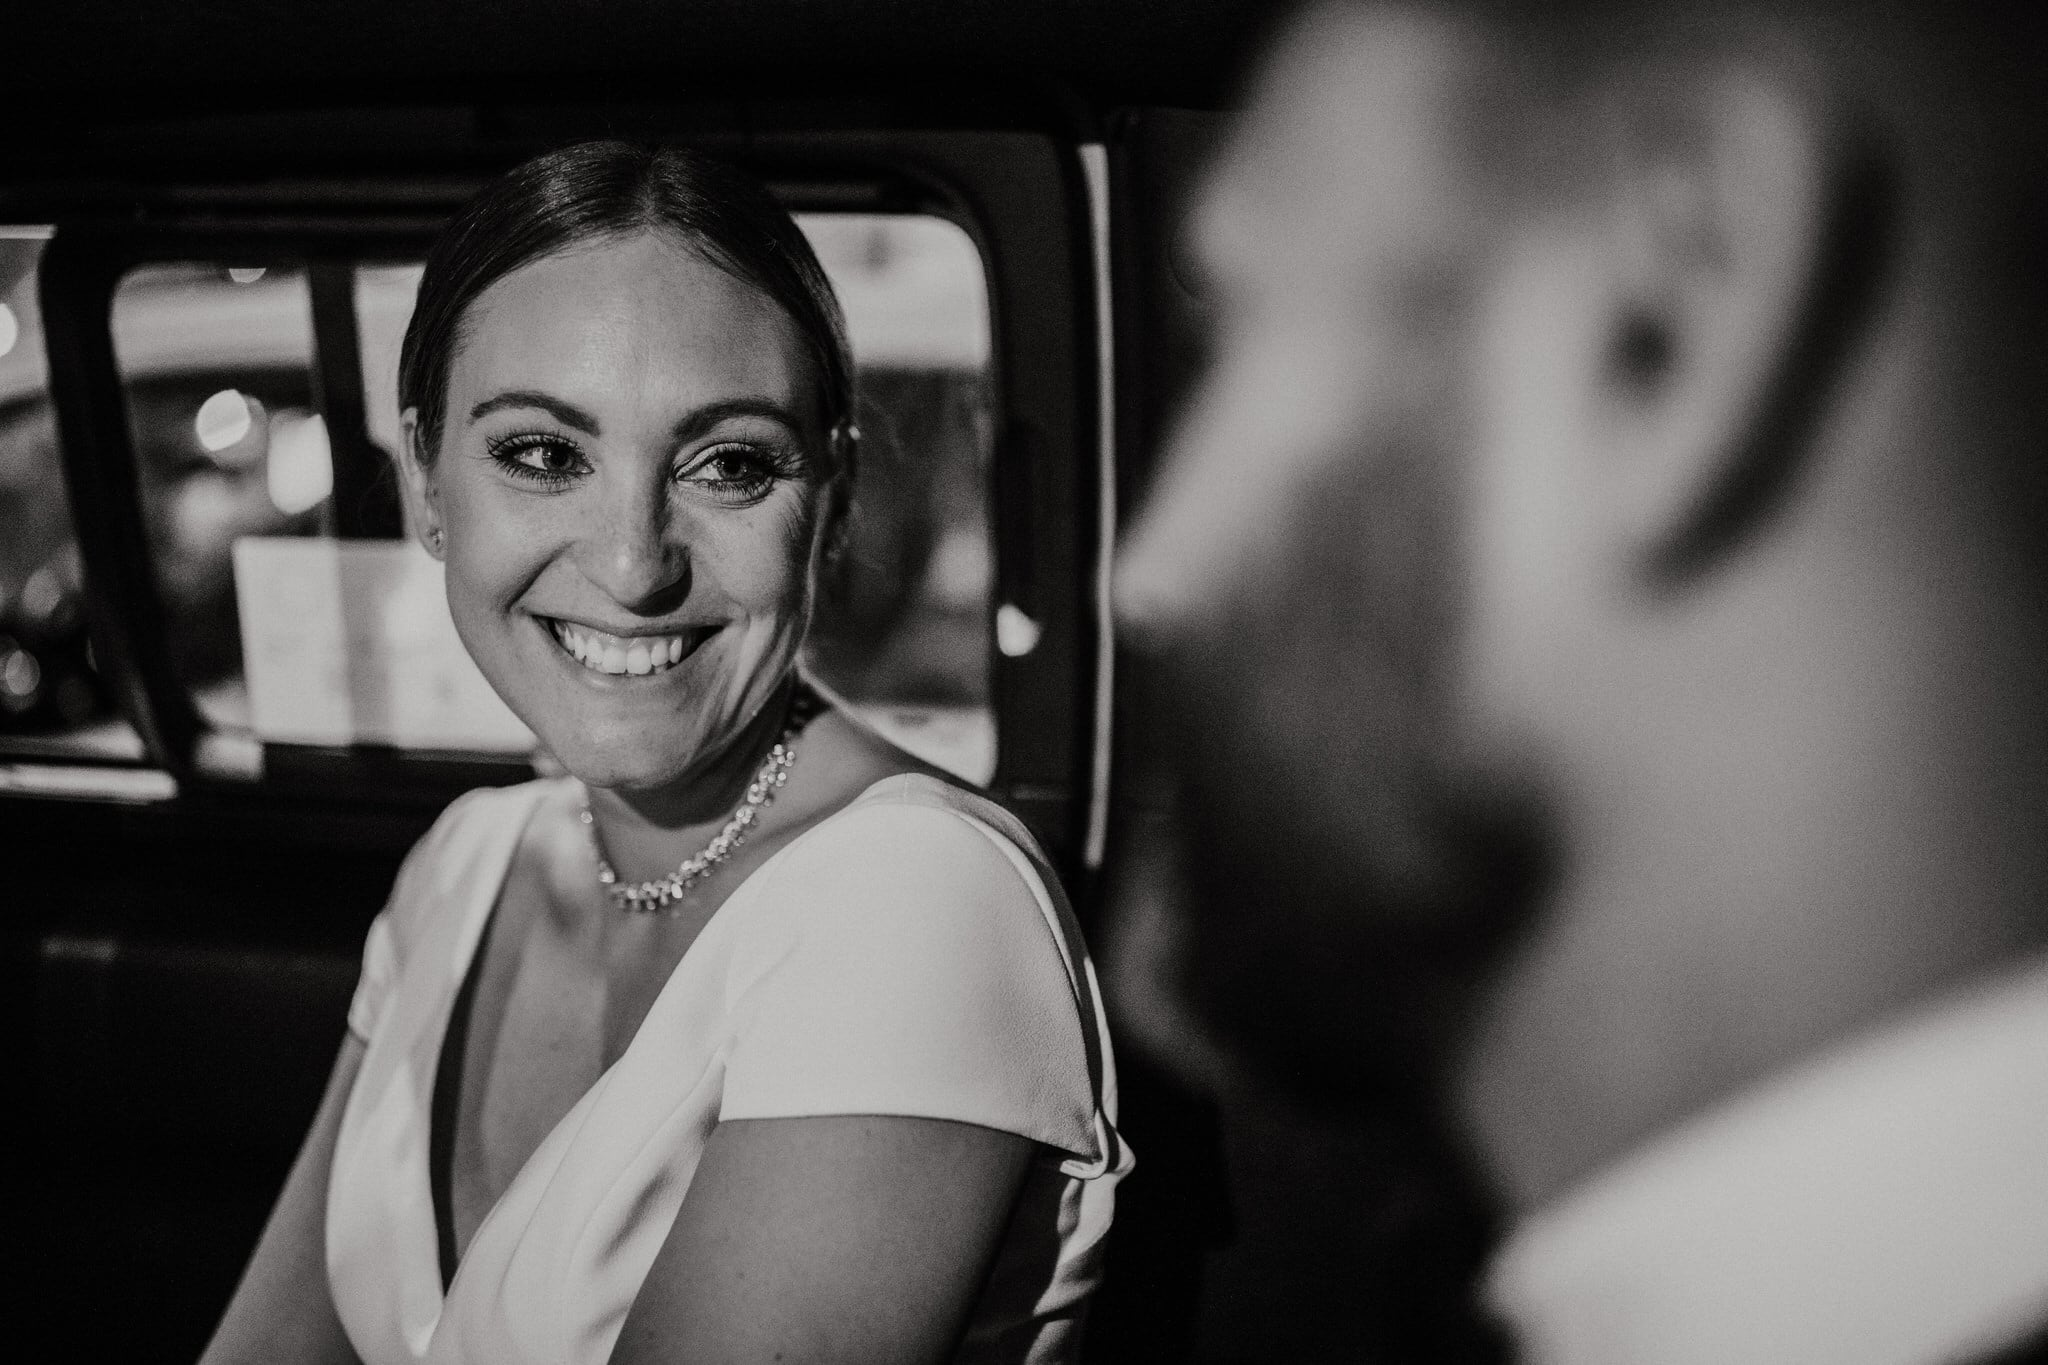 Black and white photo as the bride smiles at her groom in the taxi. Wedding Photographer Brent Calis.